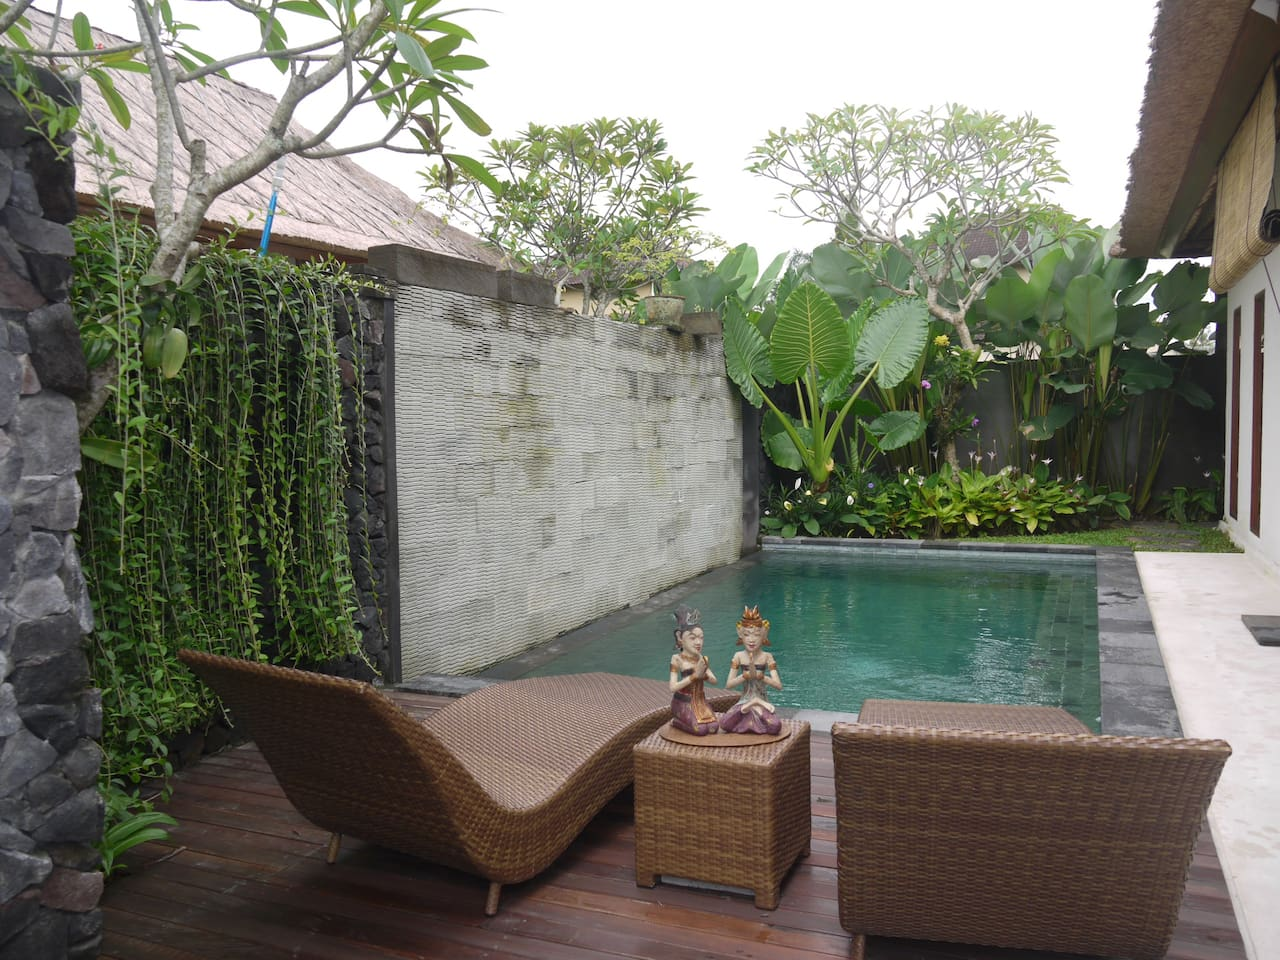 Natural view of the pool area